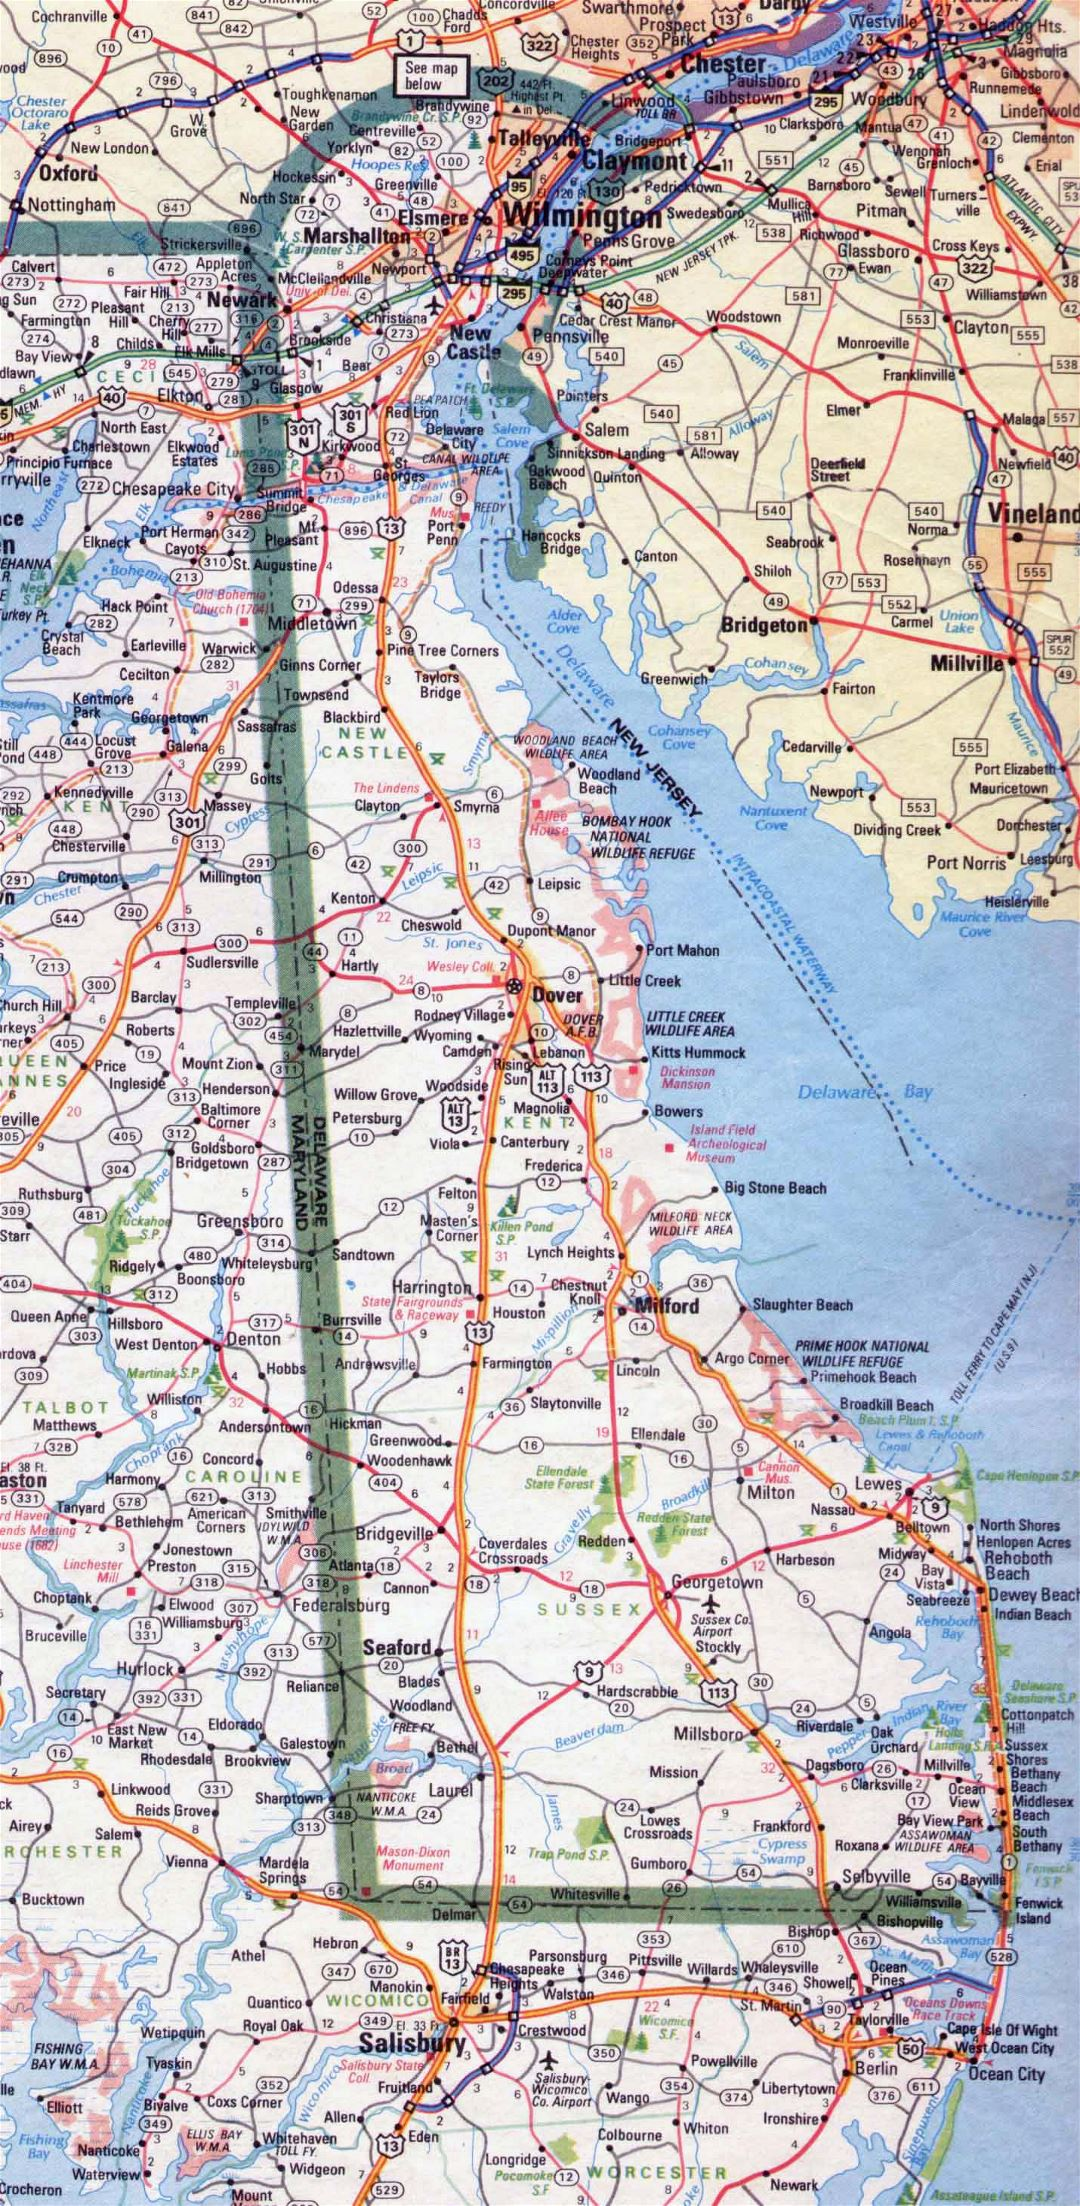 Large roads and highways map of Delaware state - 1983